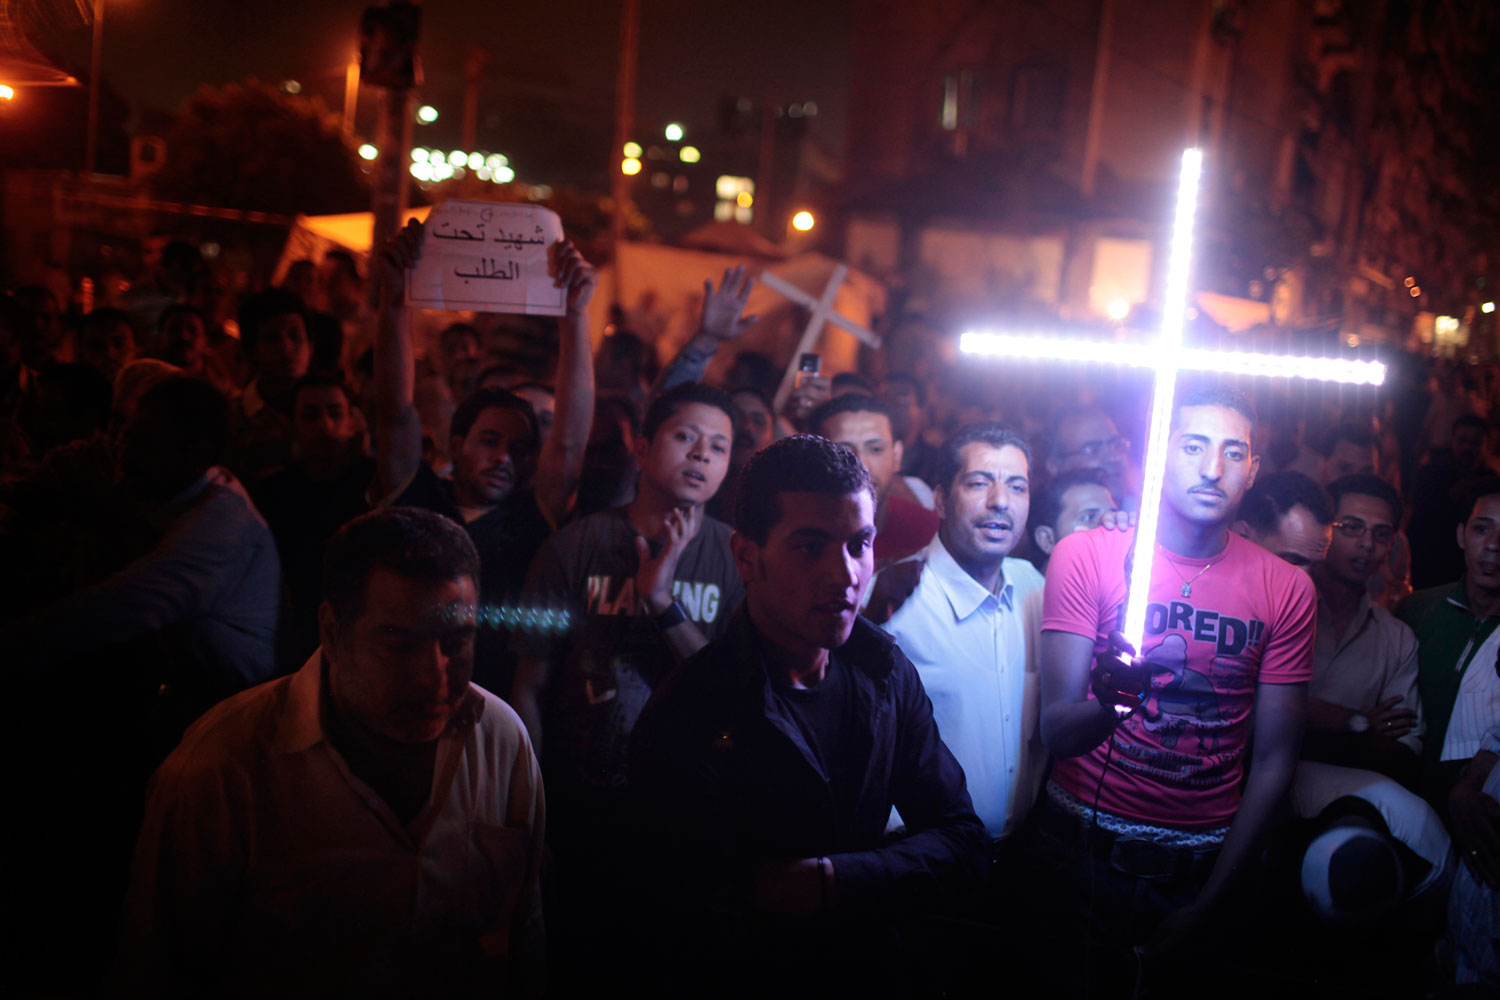 Cairo, Egypt. May 19, 2011.                                In mid May, tensions between Muslim groups and Coptic Christians peaked, where clashes led to deaths and burning of churches. I shot this during a sit-in of Coptic Christians.